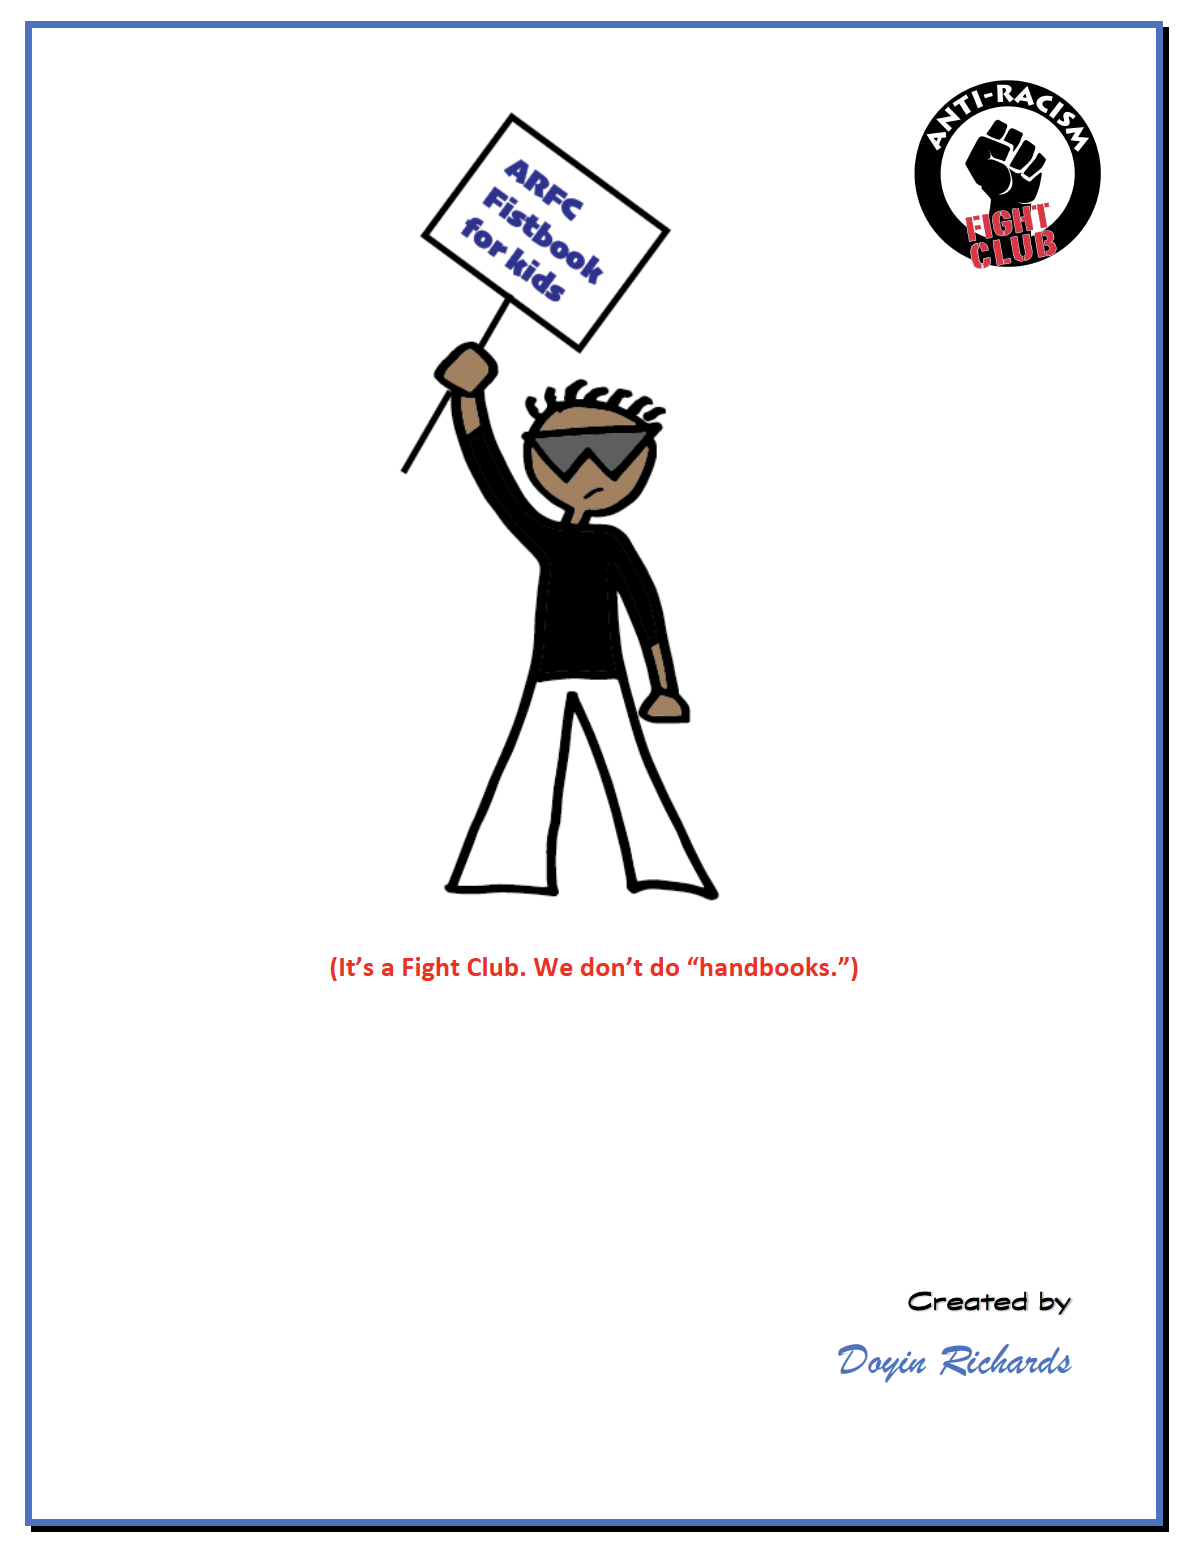 Anti-Racism Fight Club Fistbook for Kids